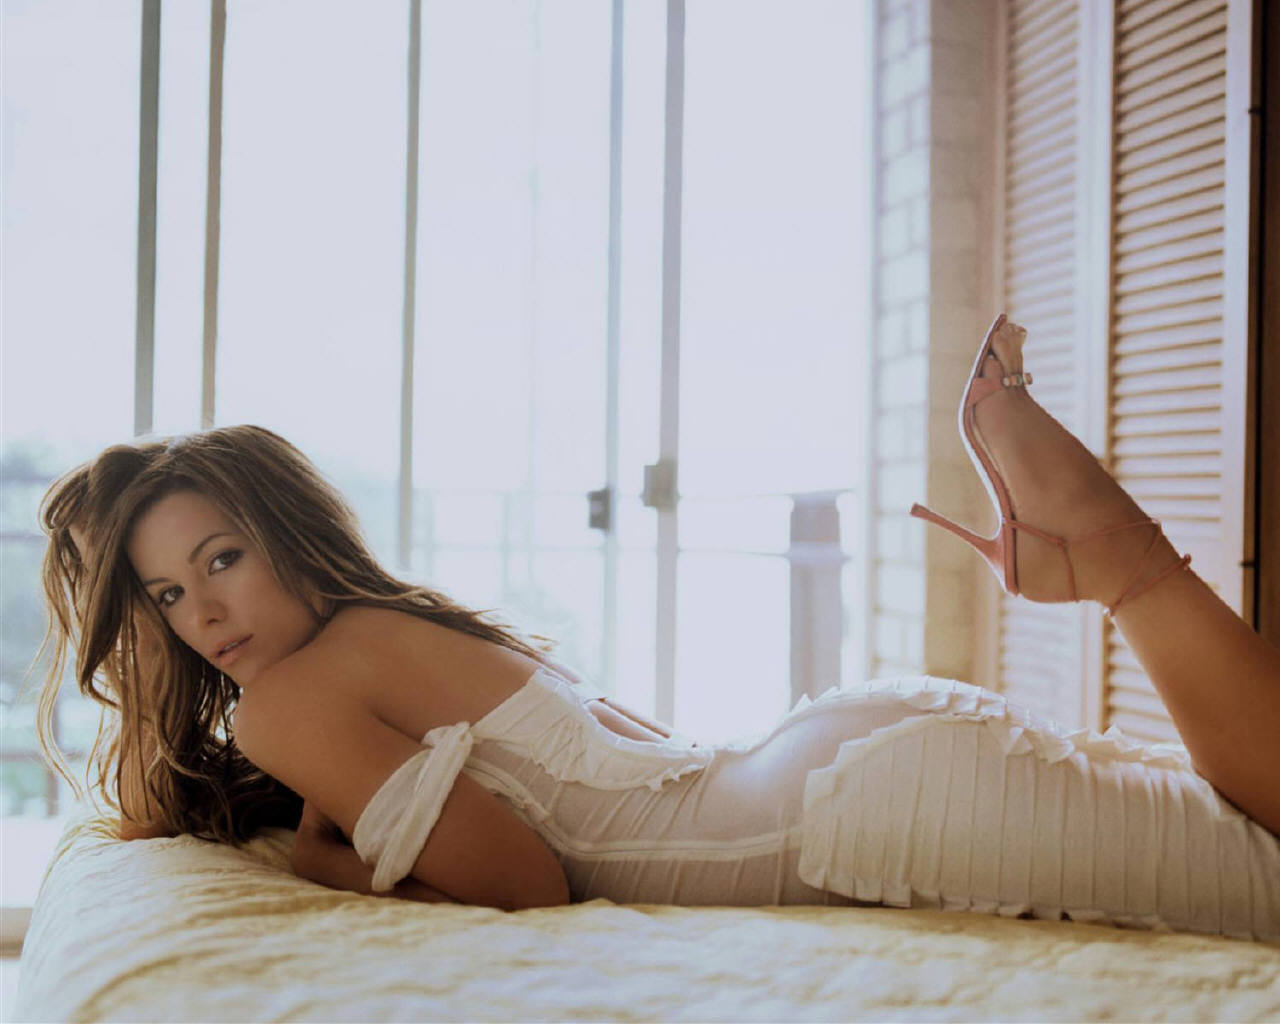 Kate Beckinsale - Kate Beckinsale Wallpaper (78851) - Fanpop